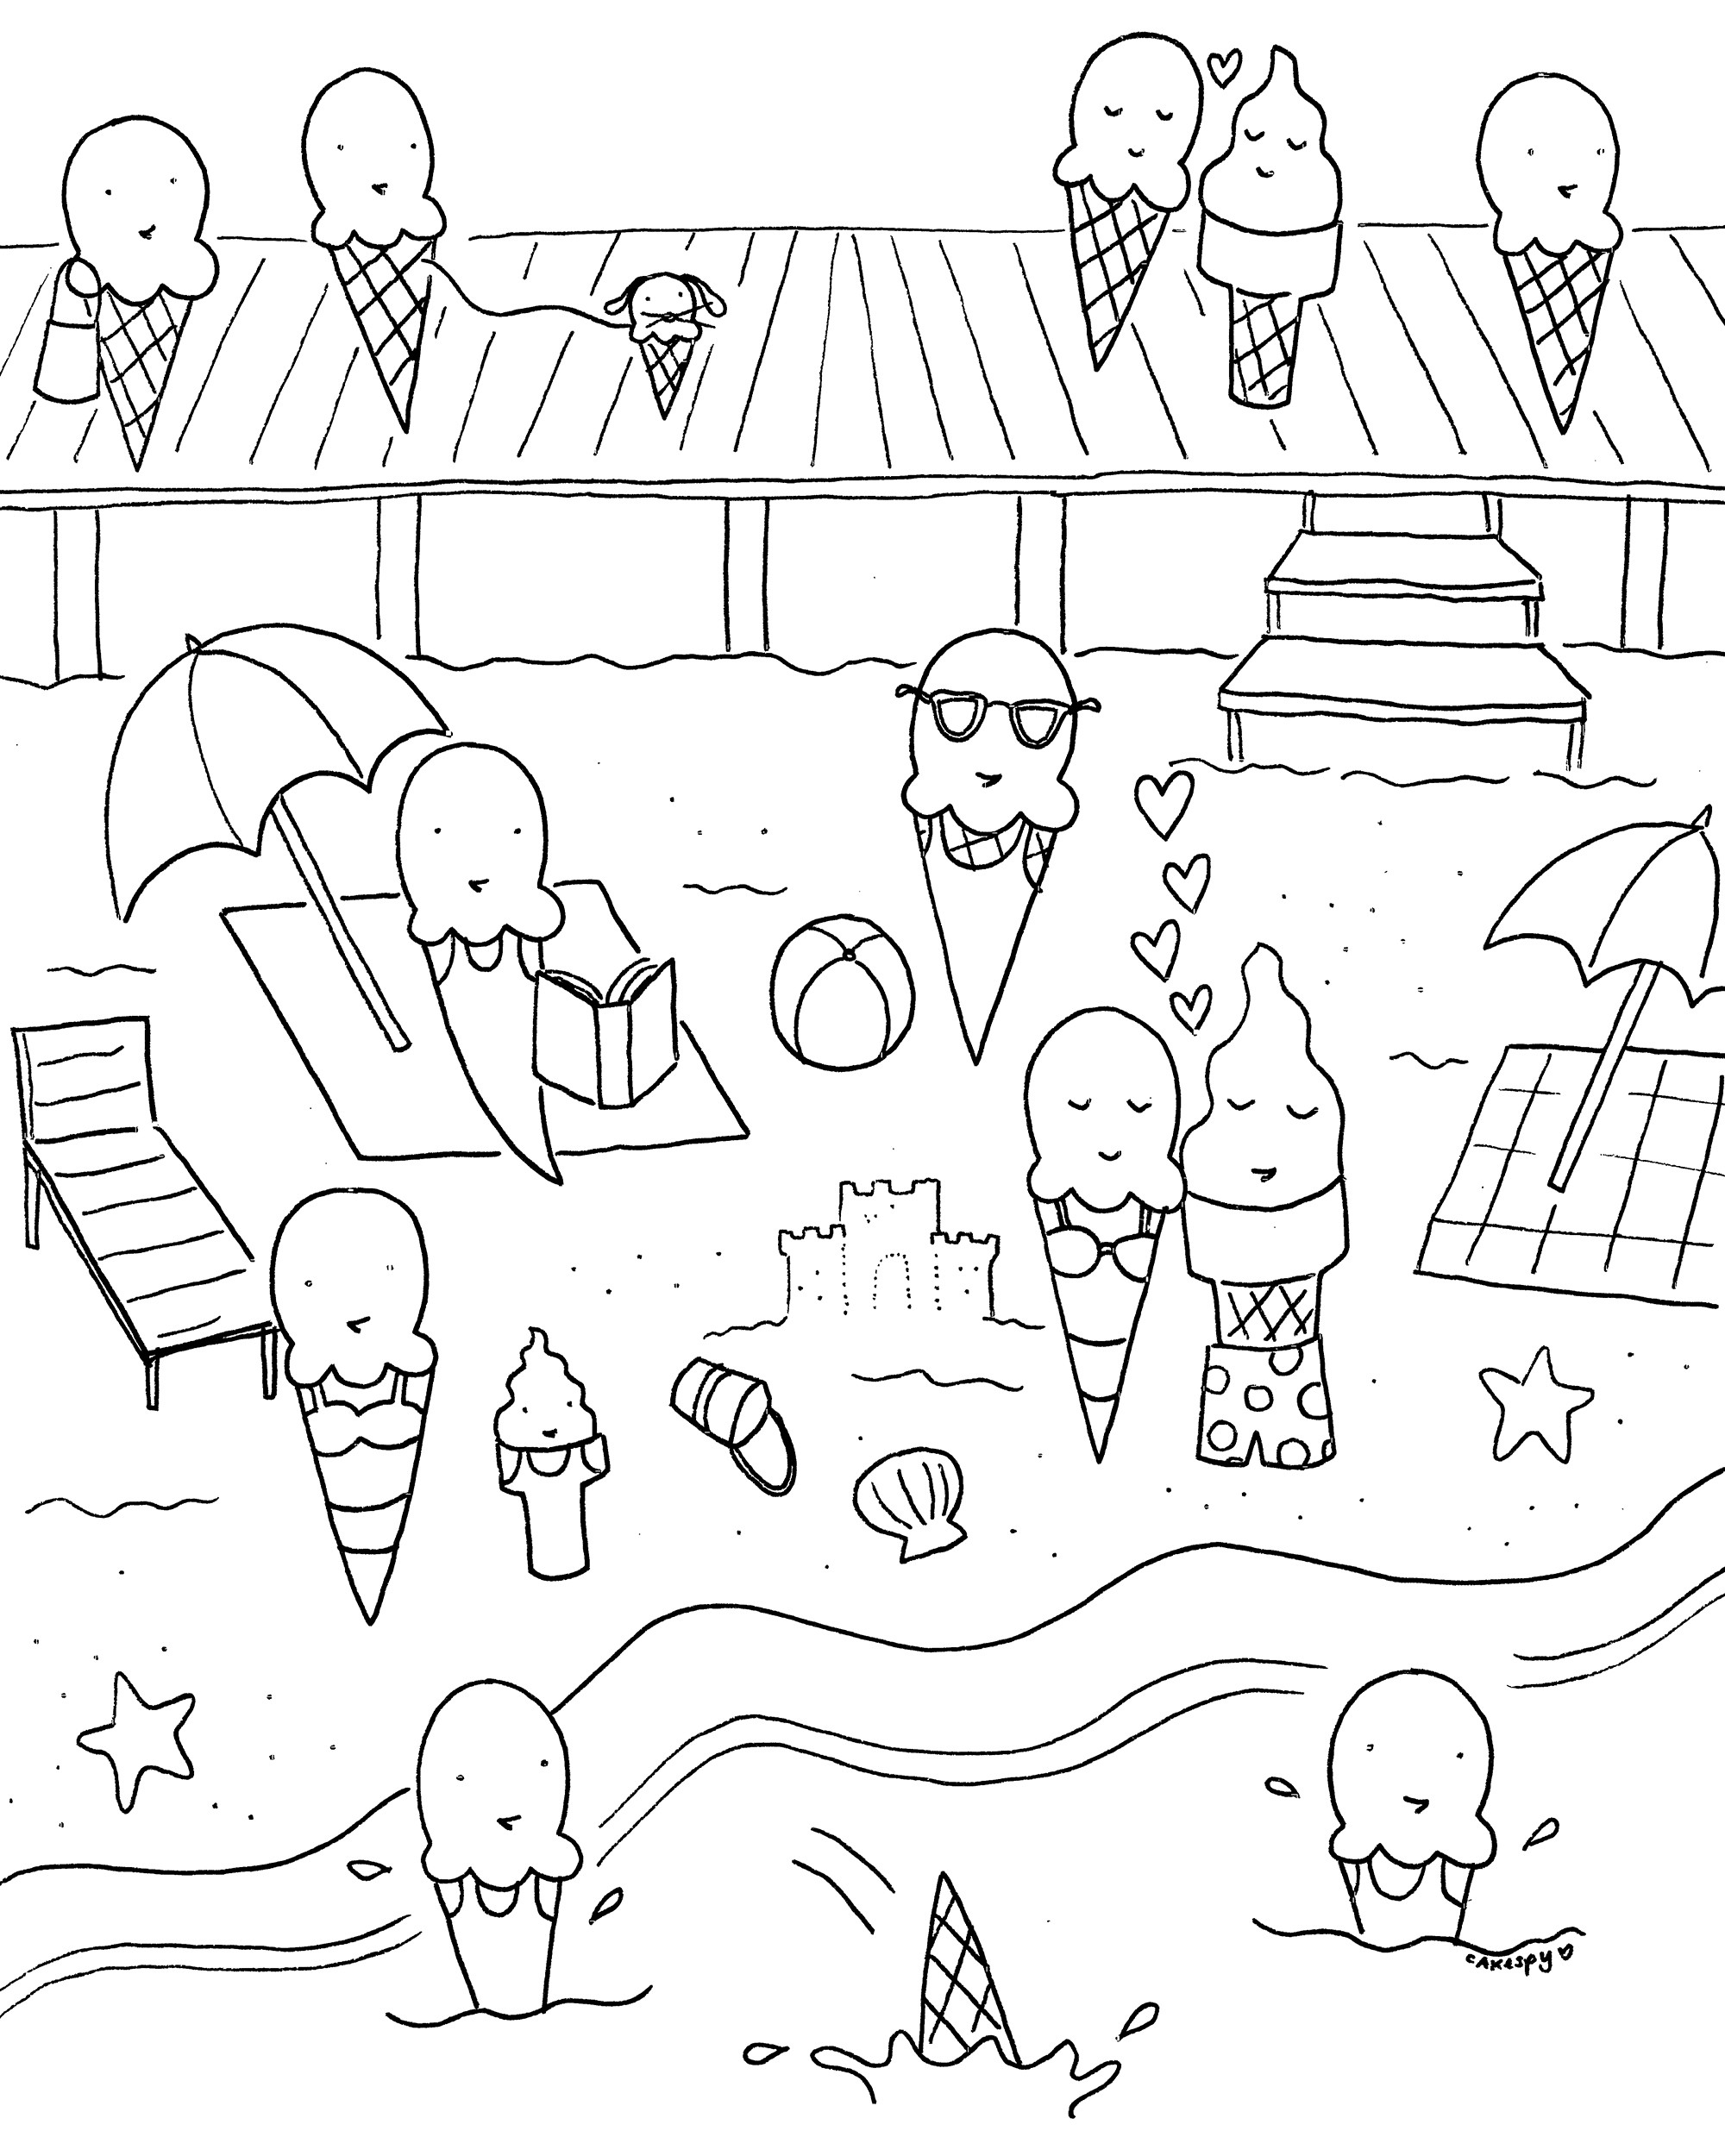 Best ideas about Coloring Sheets For Kids Summer Vacation . Save or Pin FREE Downloadable Summer Fun Coloring Book Pages Now.